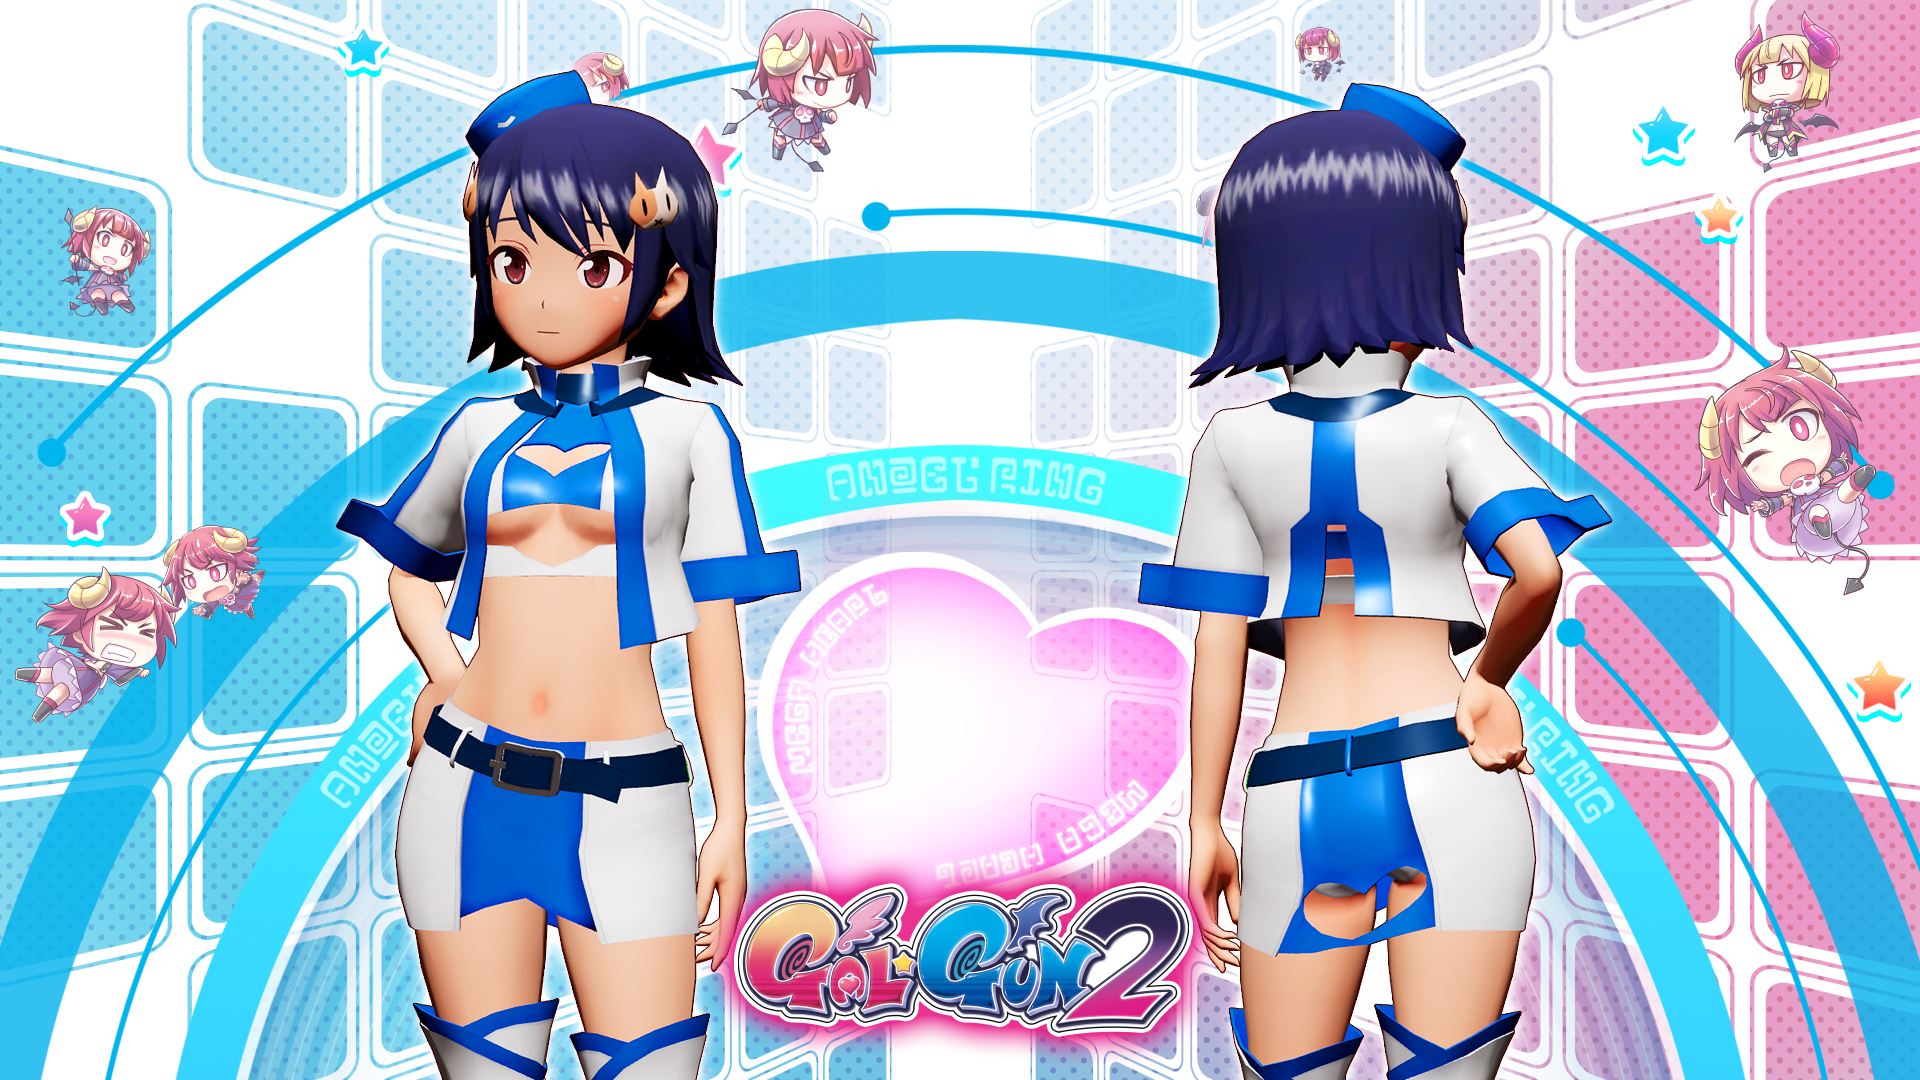 Gal*Gun 2 - Pole Position Pin-up Set